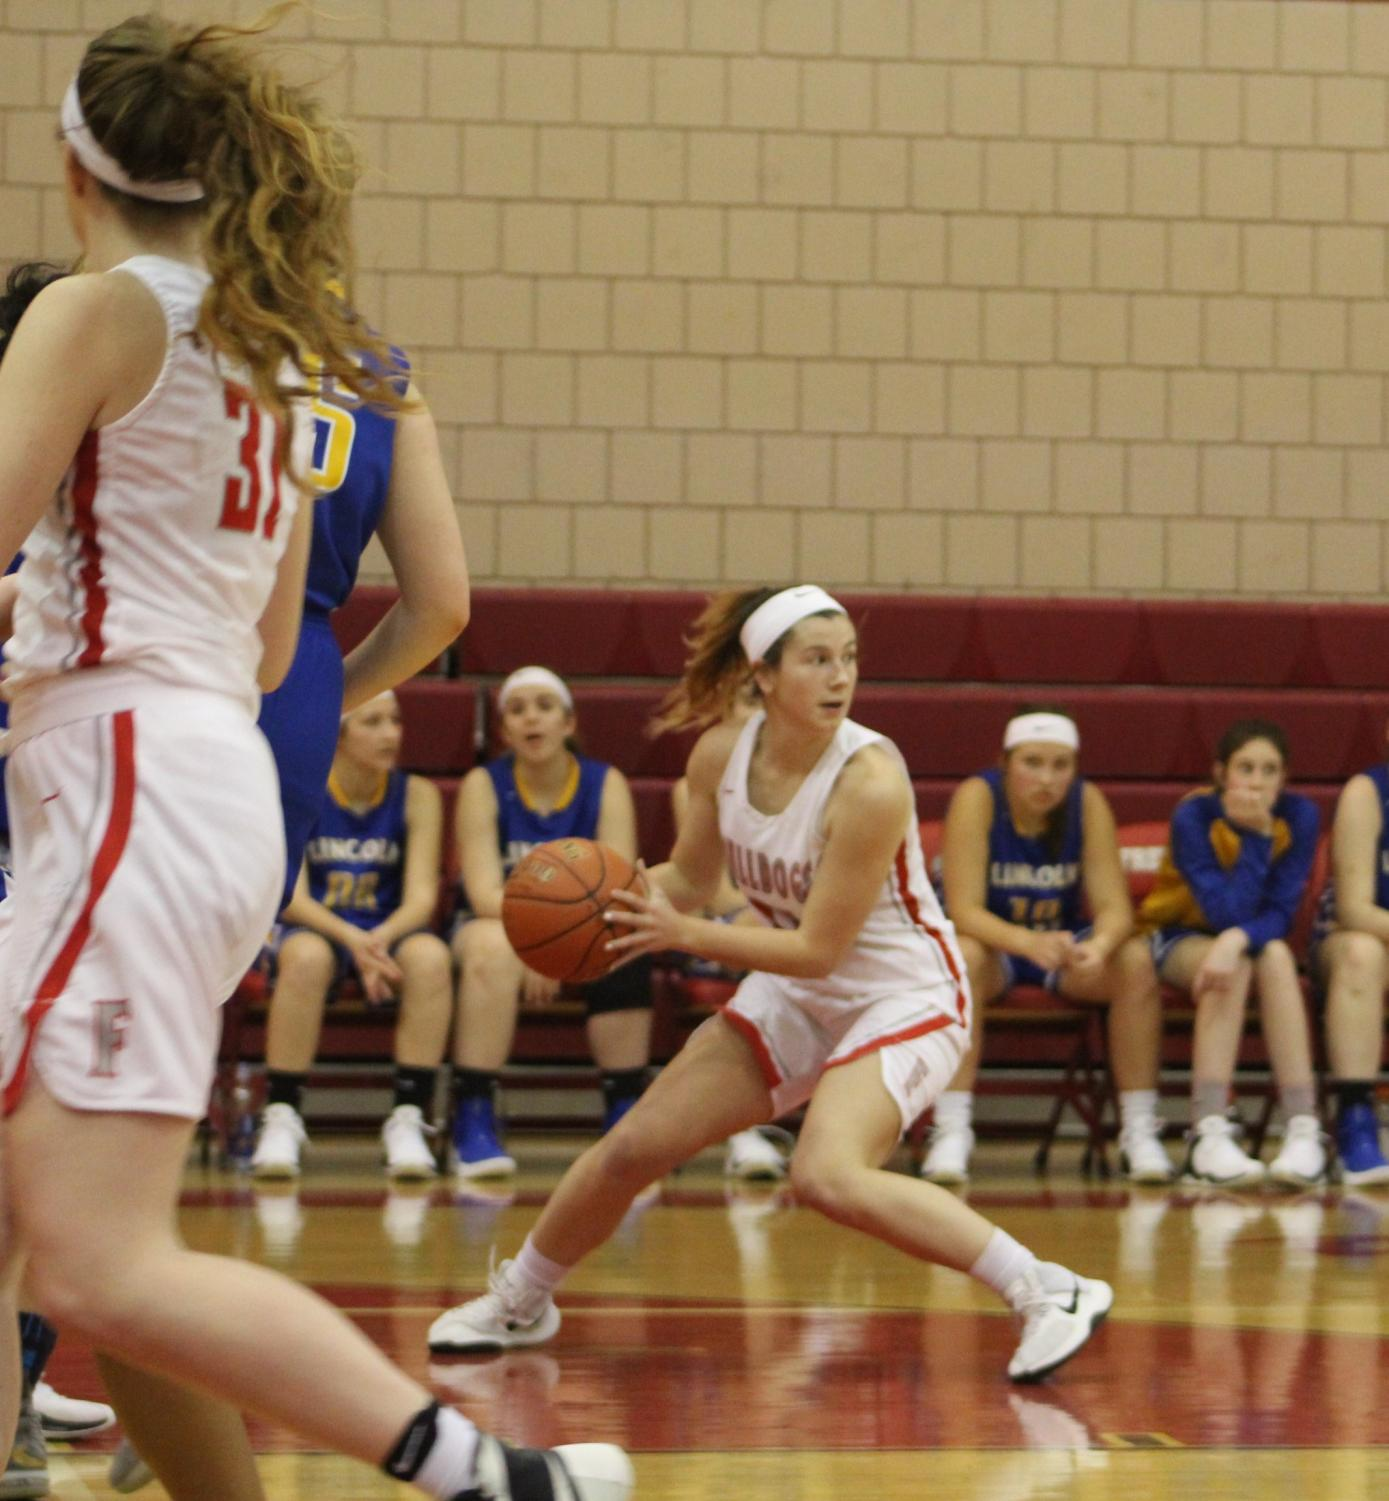 Freshman player Renae Mohrbacher searches for a teammate to pass to during the second quarter of the Lady Bulldogs final game of the season on Feb. 11.